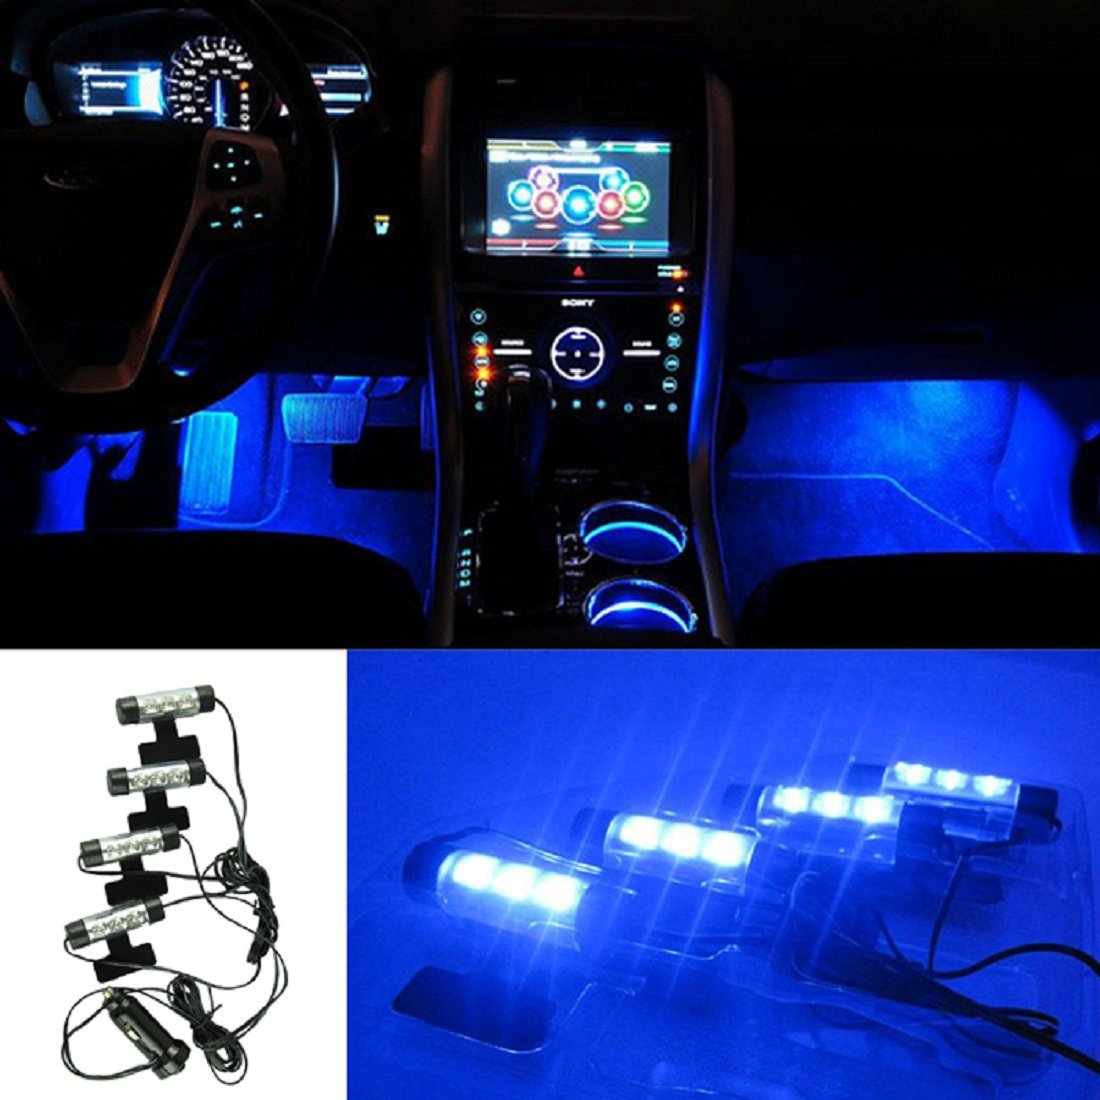 TONSEE 4x 3LED Car Charge 12V Glow Interior Decorative 4in1 Atmosphere Blue Light Lamp TONSEE_A7266